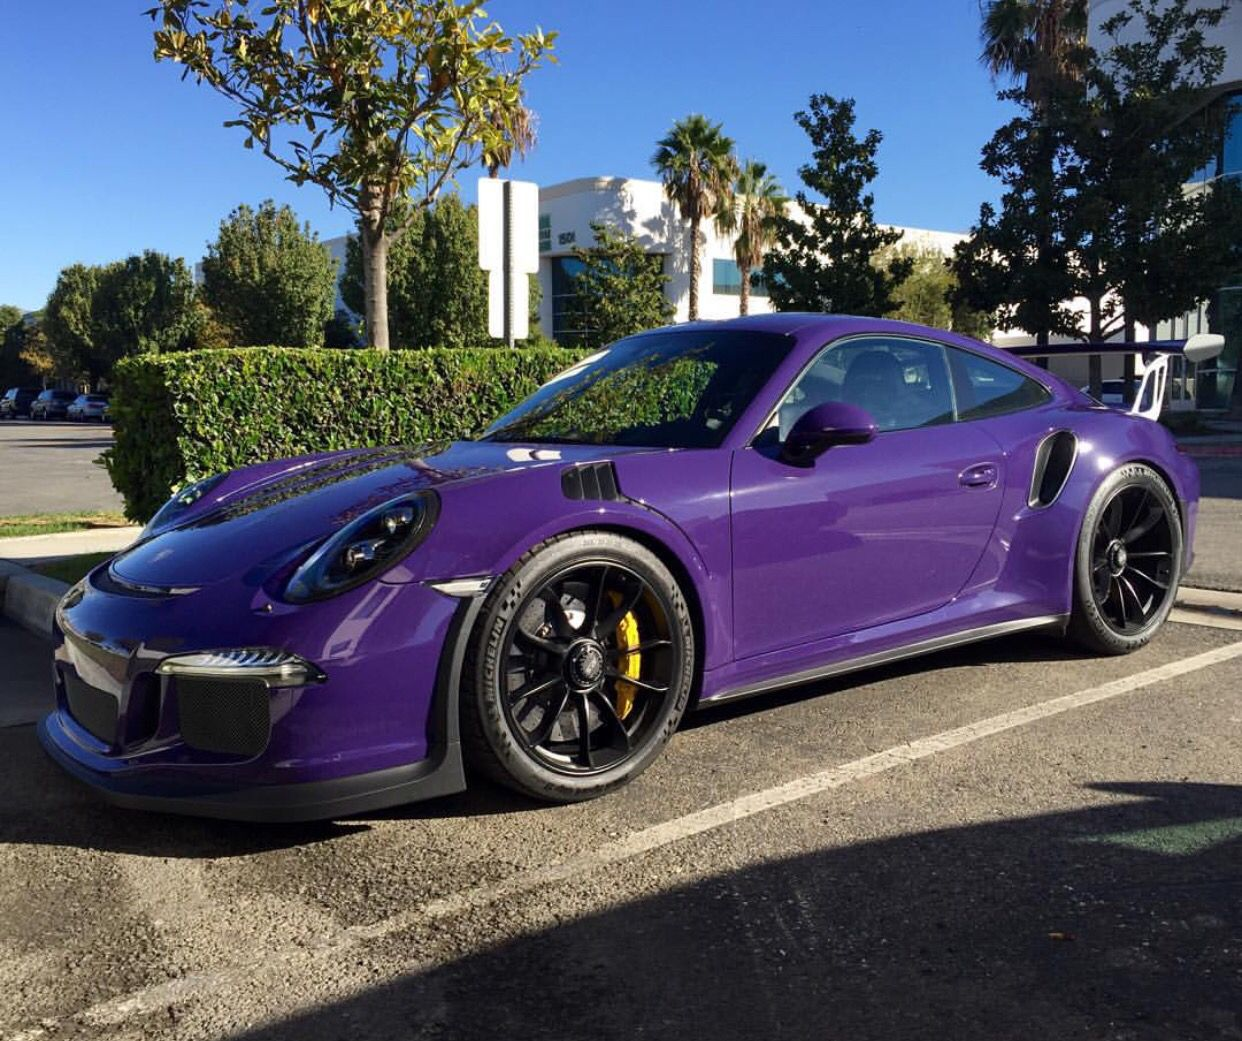 Porsche 991 GT3 RS painted in Ultraviolet Purple Photo taken